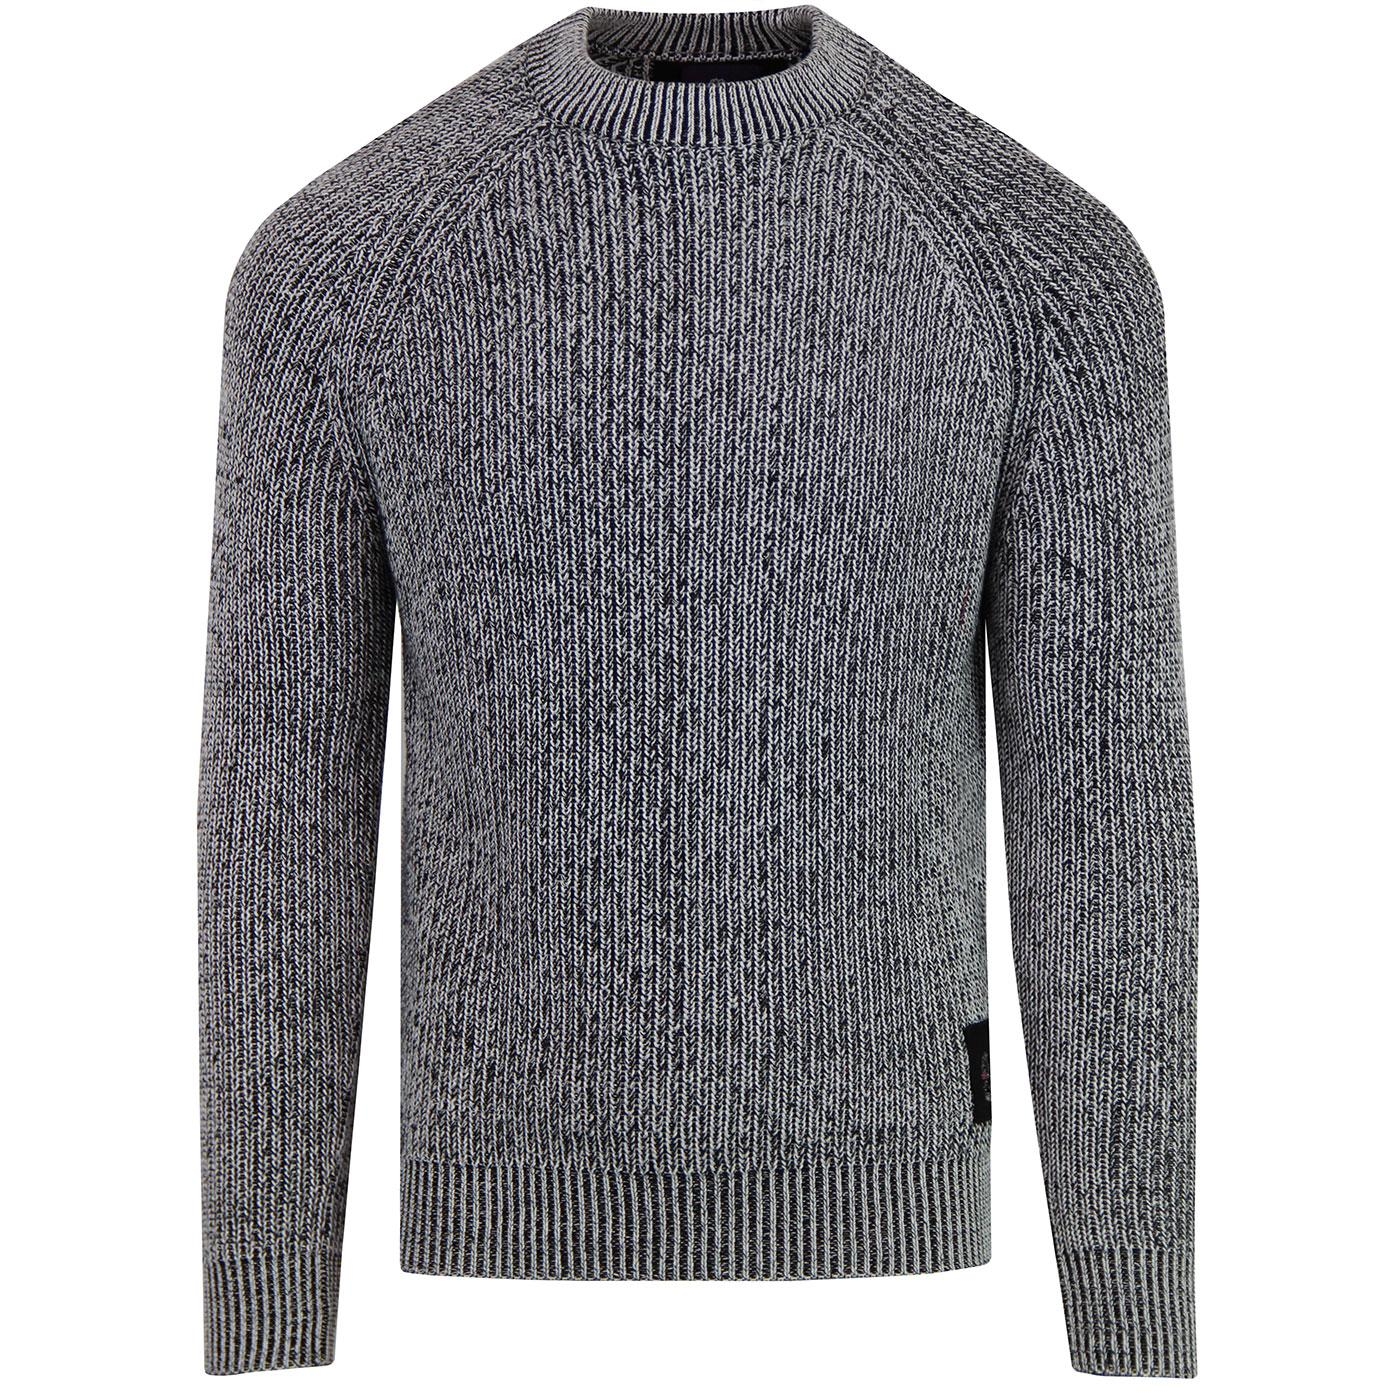 Plated LUKE Retro Ribbed Fisherman's Jumper -Black